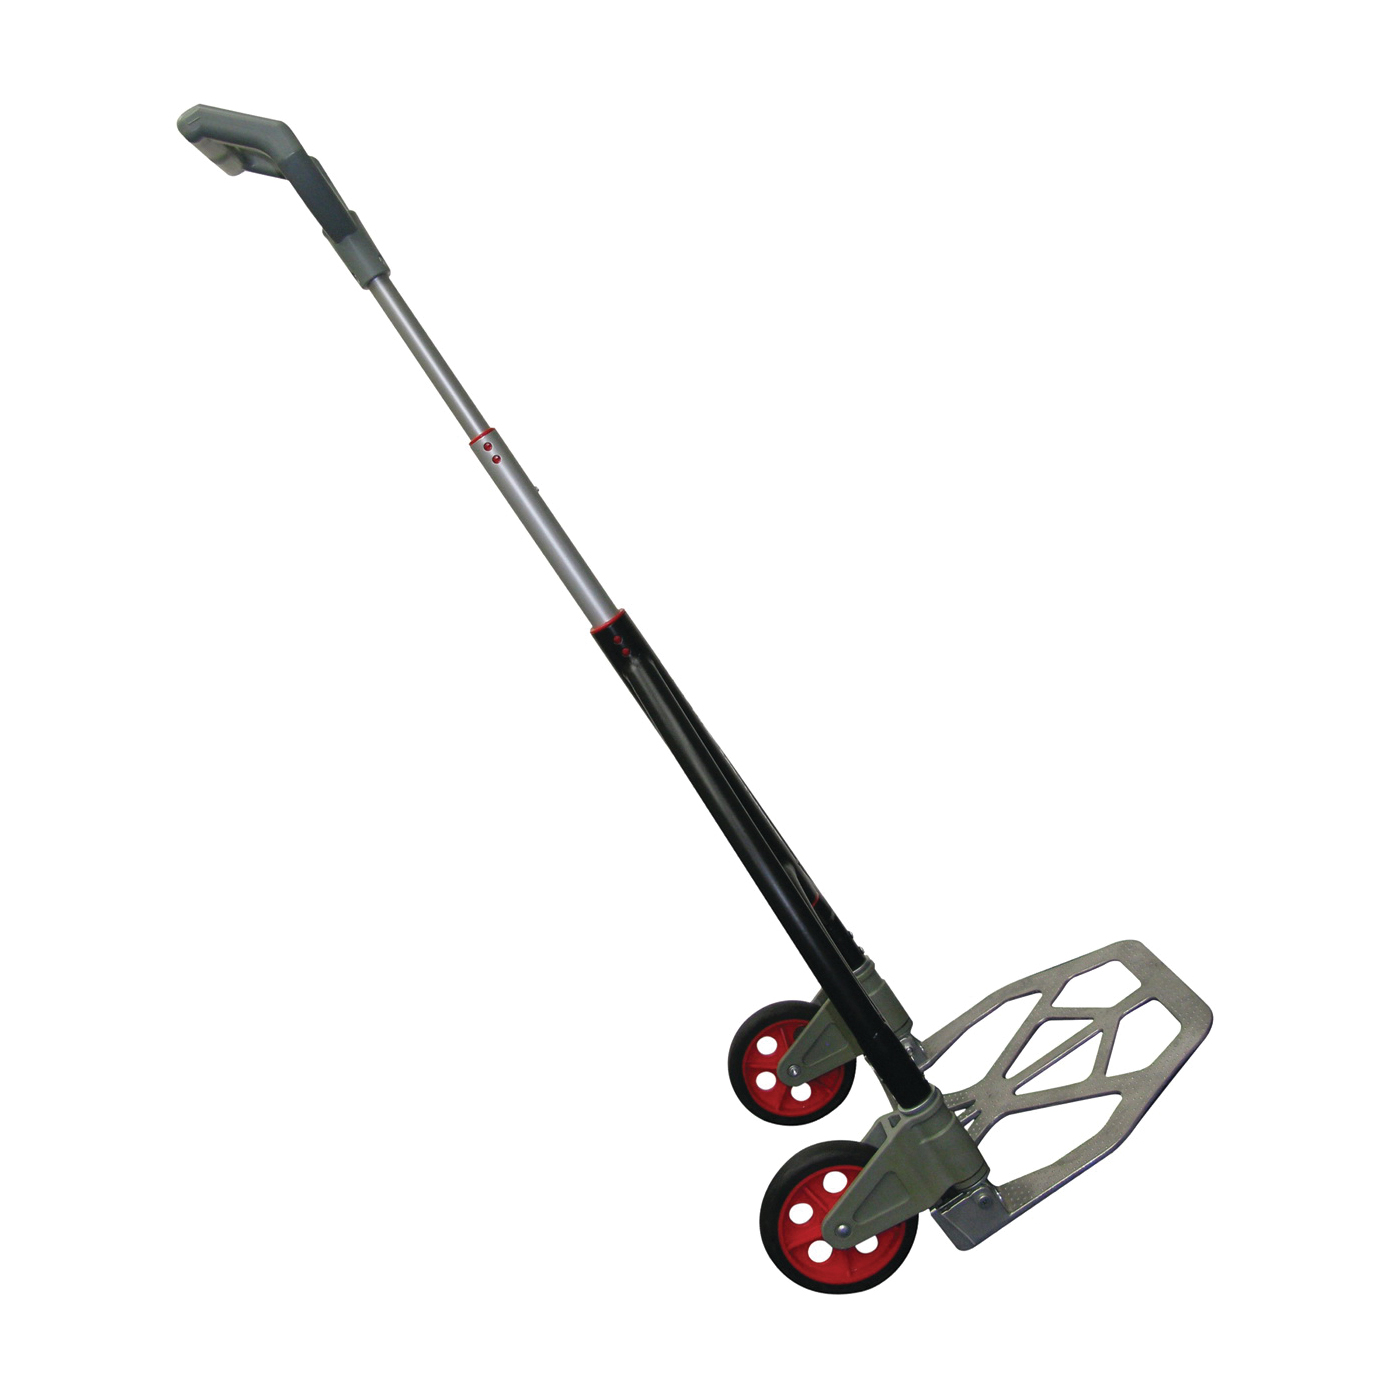 Picture of Olympia Tools PACK-N-ROLL 85-601 Hand Truck, 155 lb, 15-3/4 in OAW, 29-1/2 in OAH, 2-1/2 in OAD, Aluminum, Black